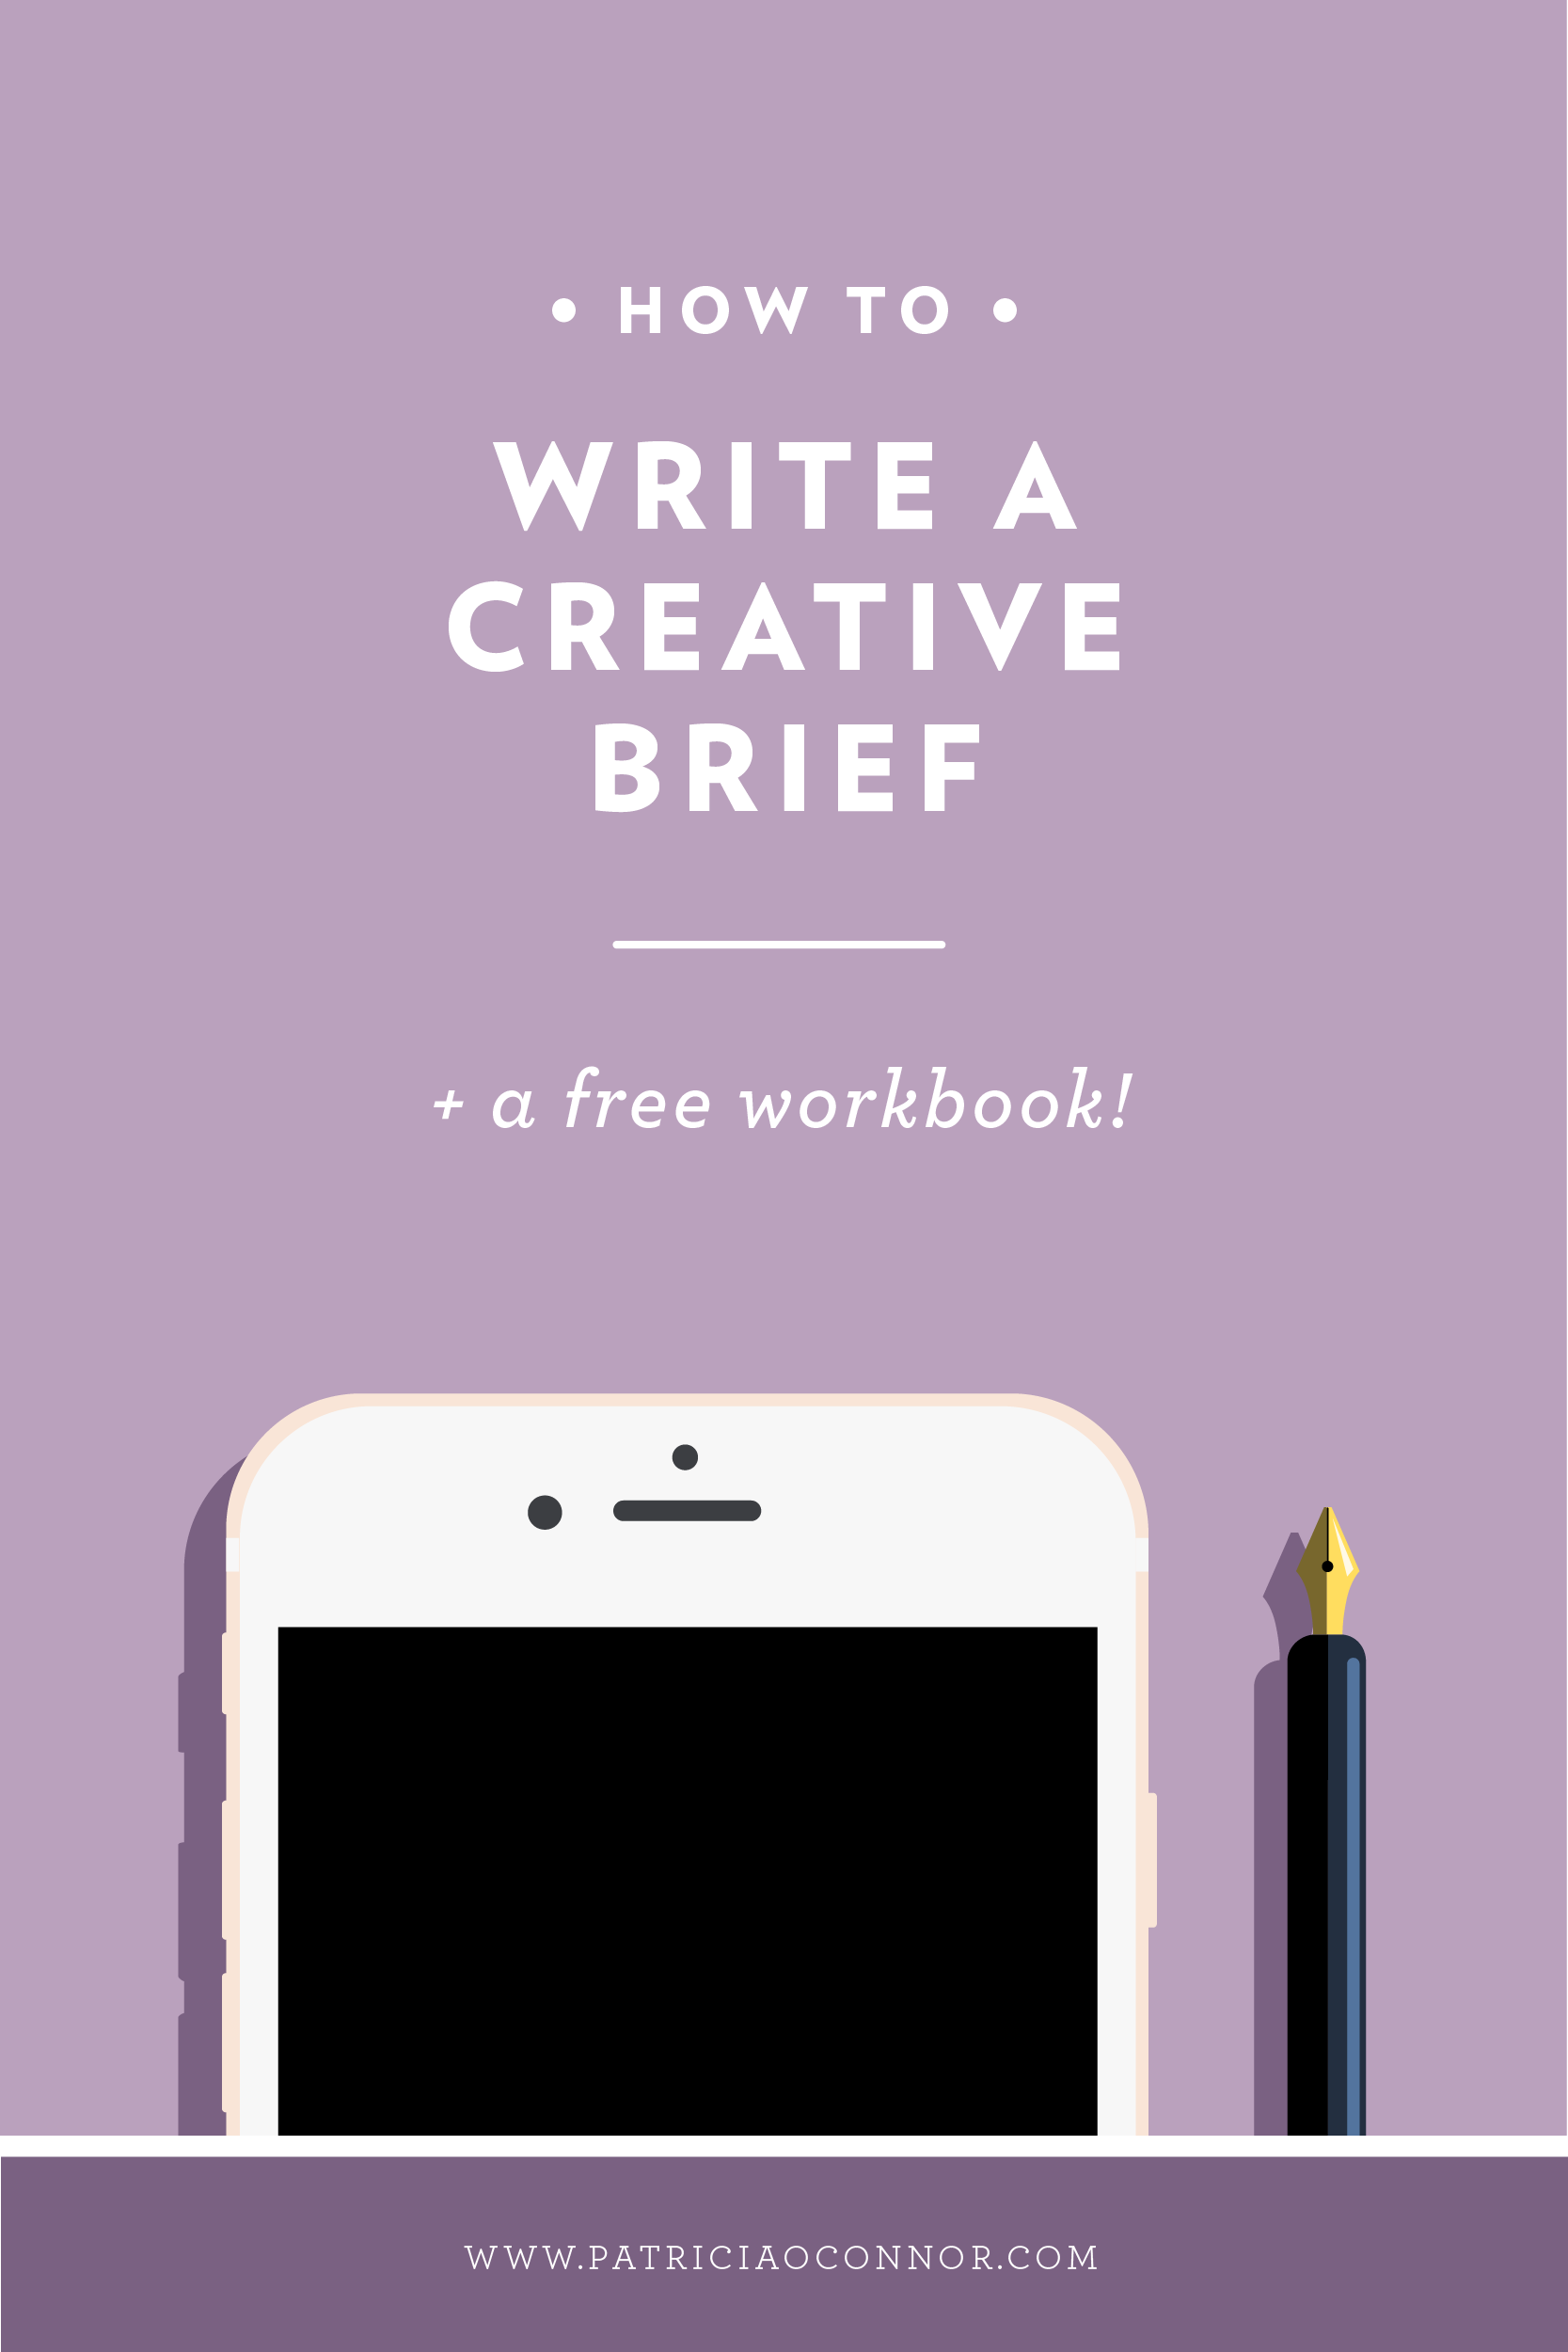 Don't forget this essential step in the design process! A well written creative brief can save you hours of revisions and lead to happier clients. Read the full post to learn how to write one!